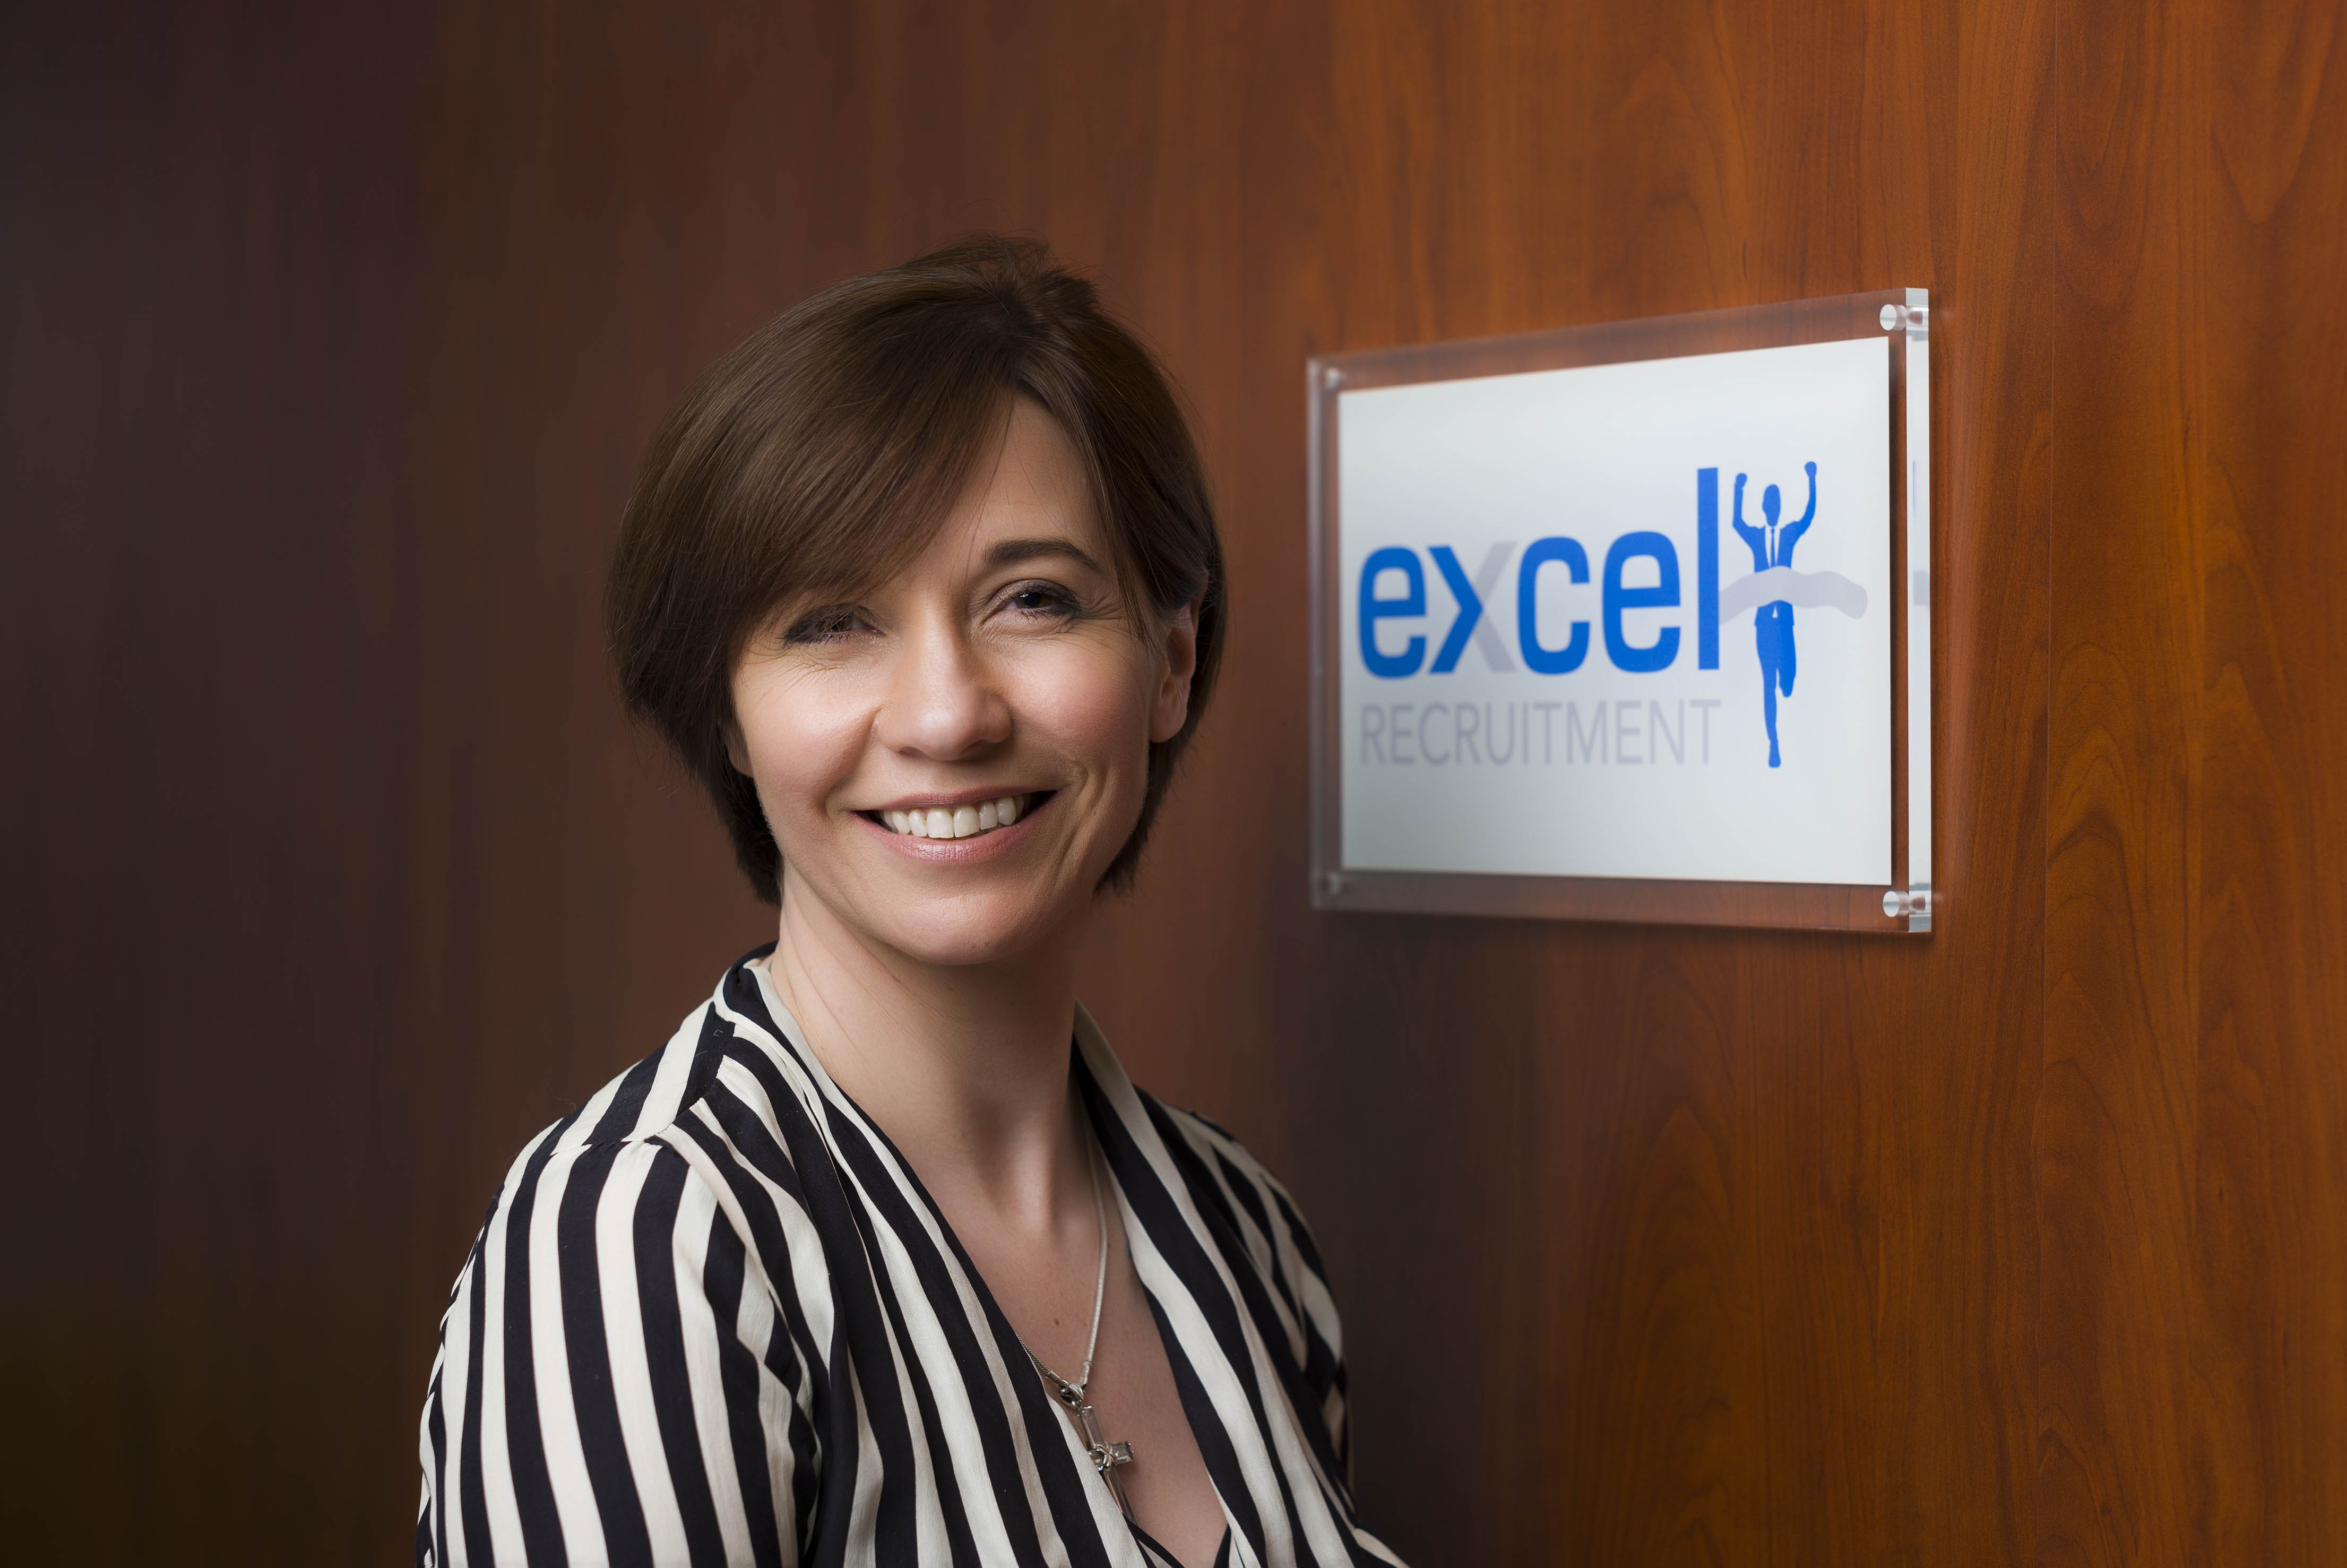 Aislinn Lea, Head of Fashion & Non-Food, Excel Recruitment